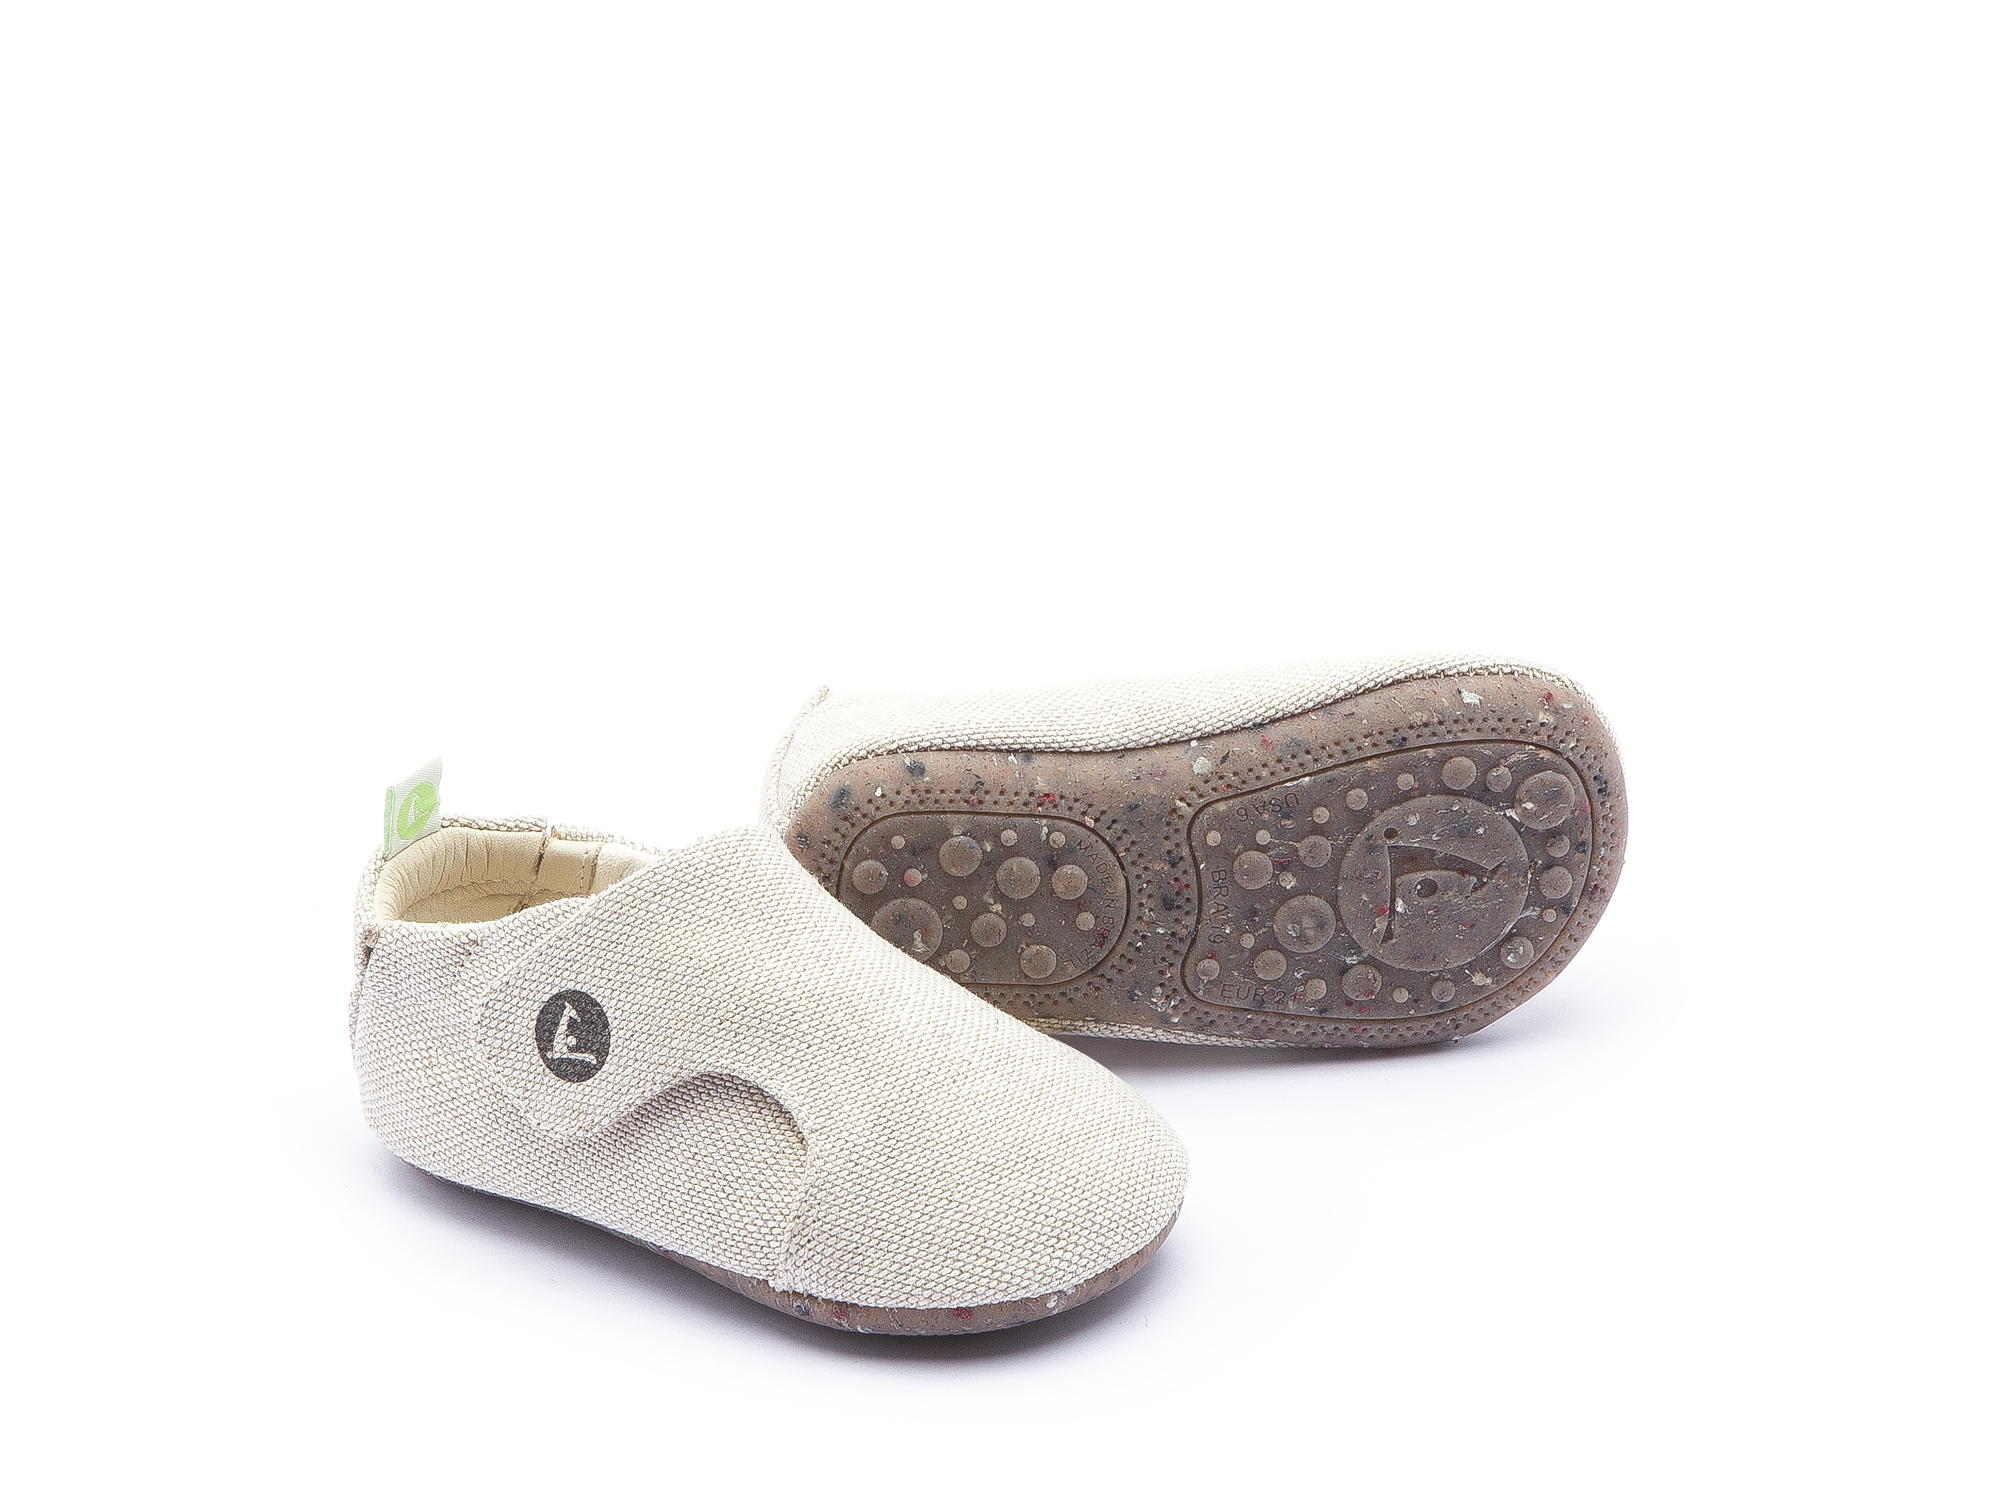 Sneaker Casual Greeny Natural Canvas Baby 0 à 2 anos - 0